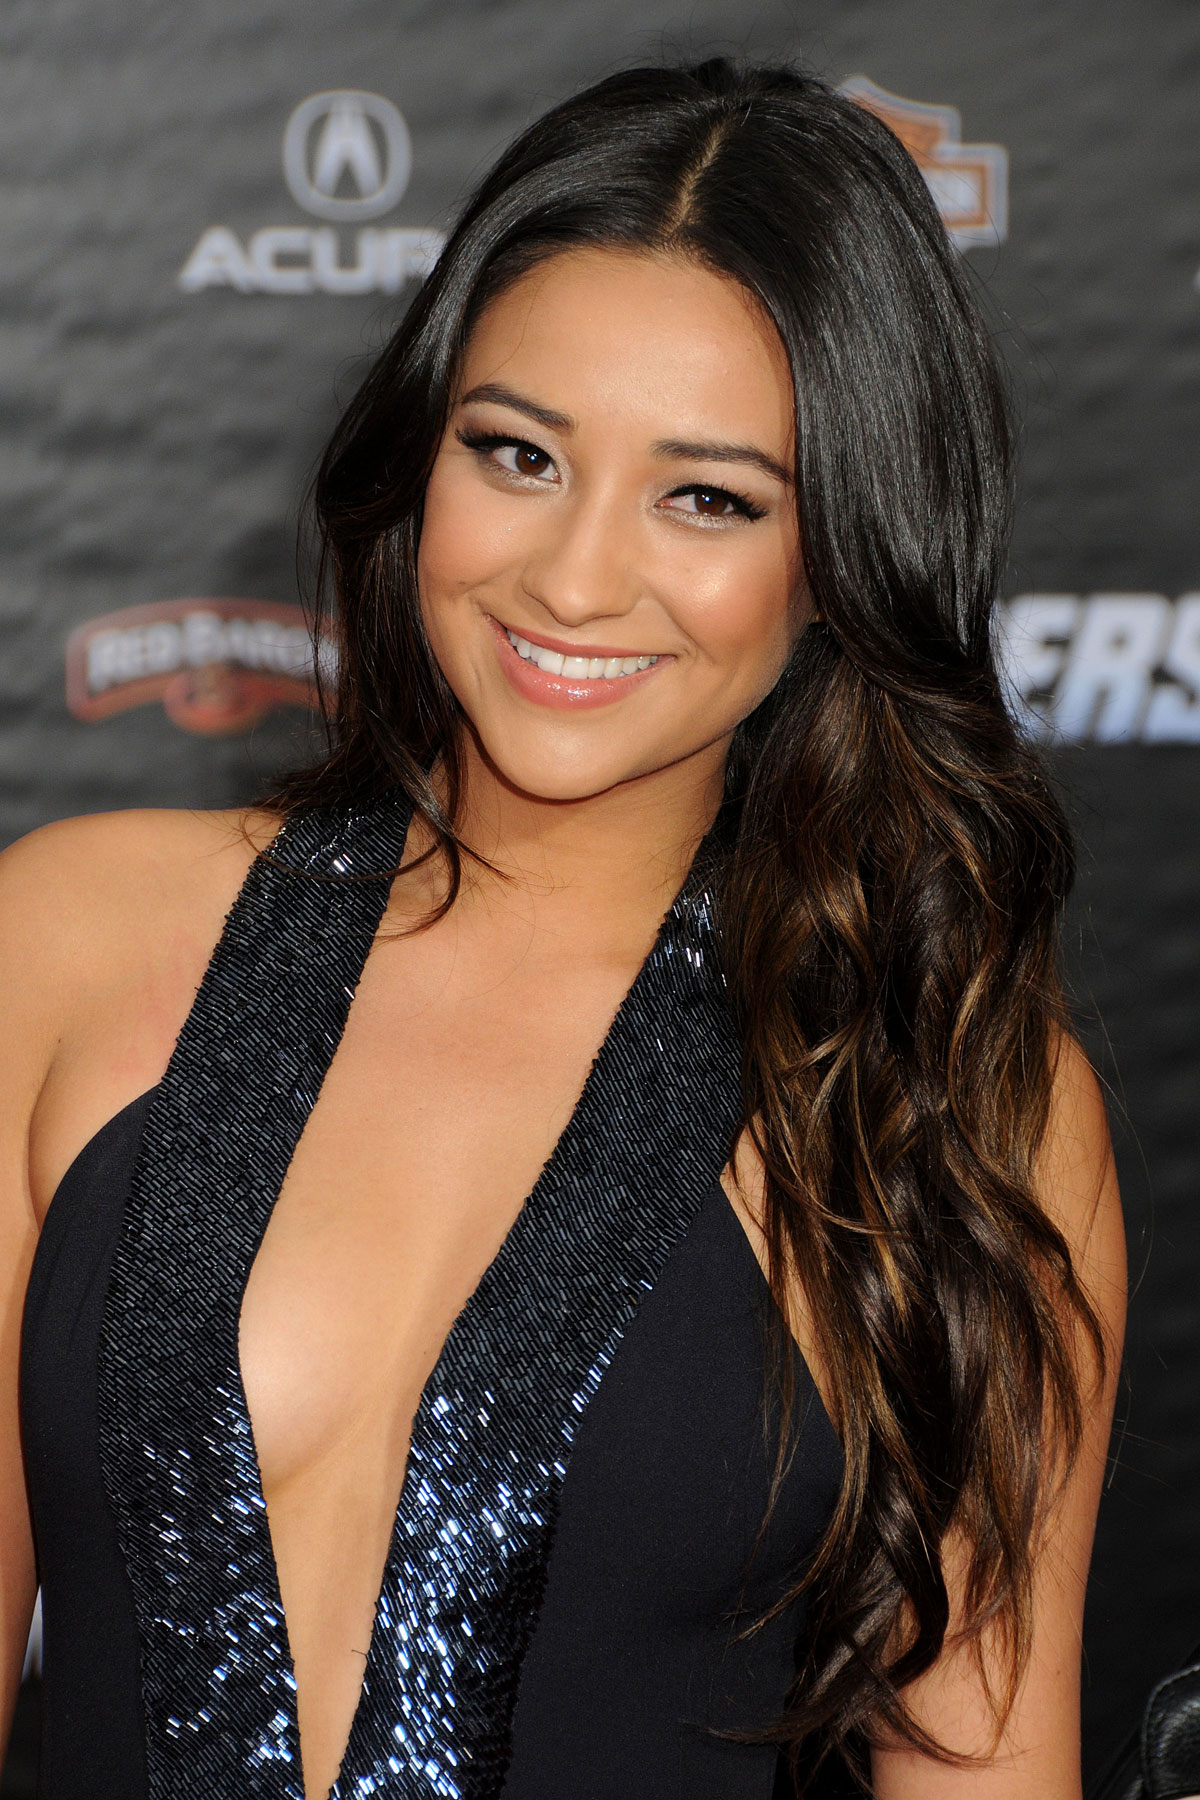 Shay Mitchell At The Avengers Premiere In Hollywood